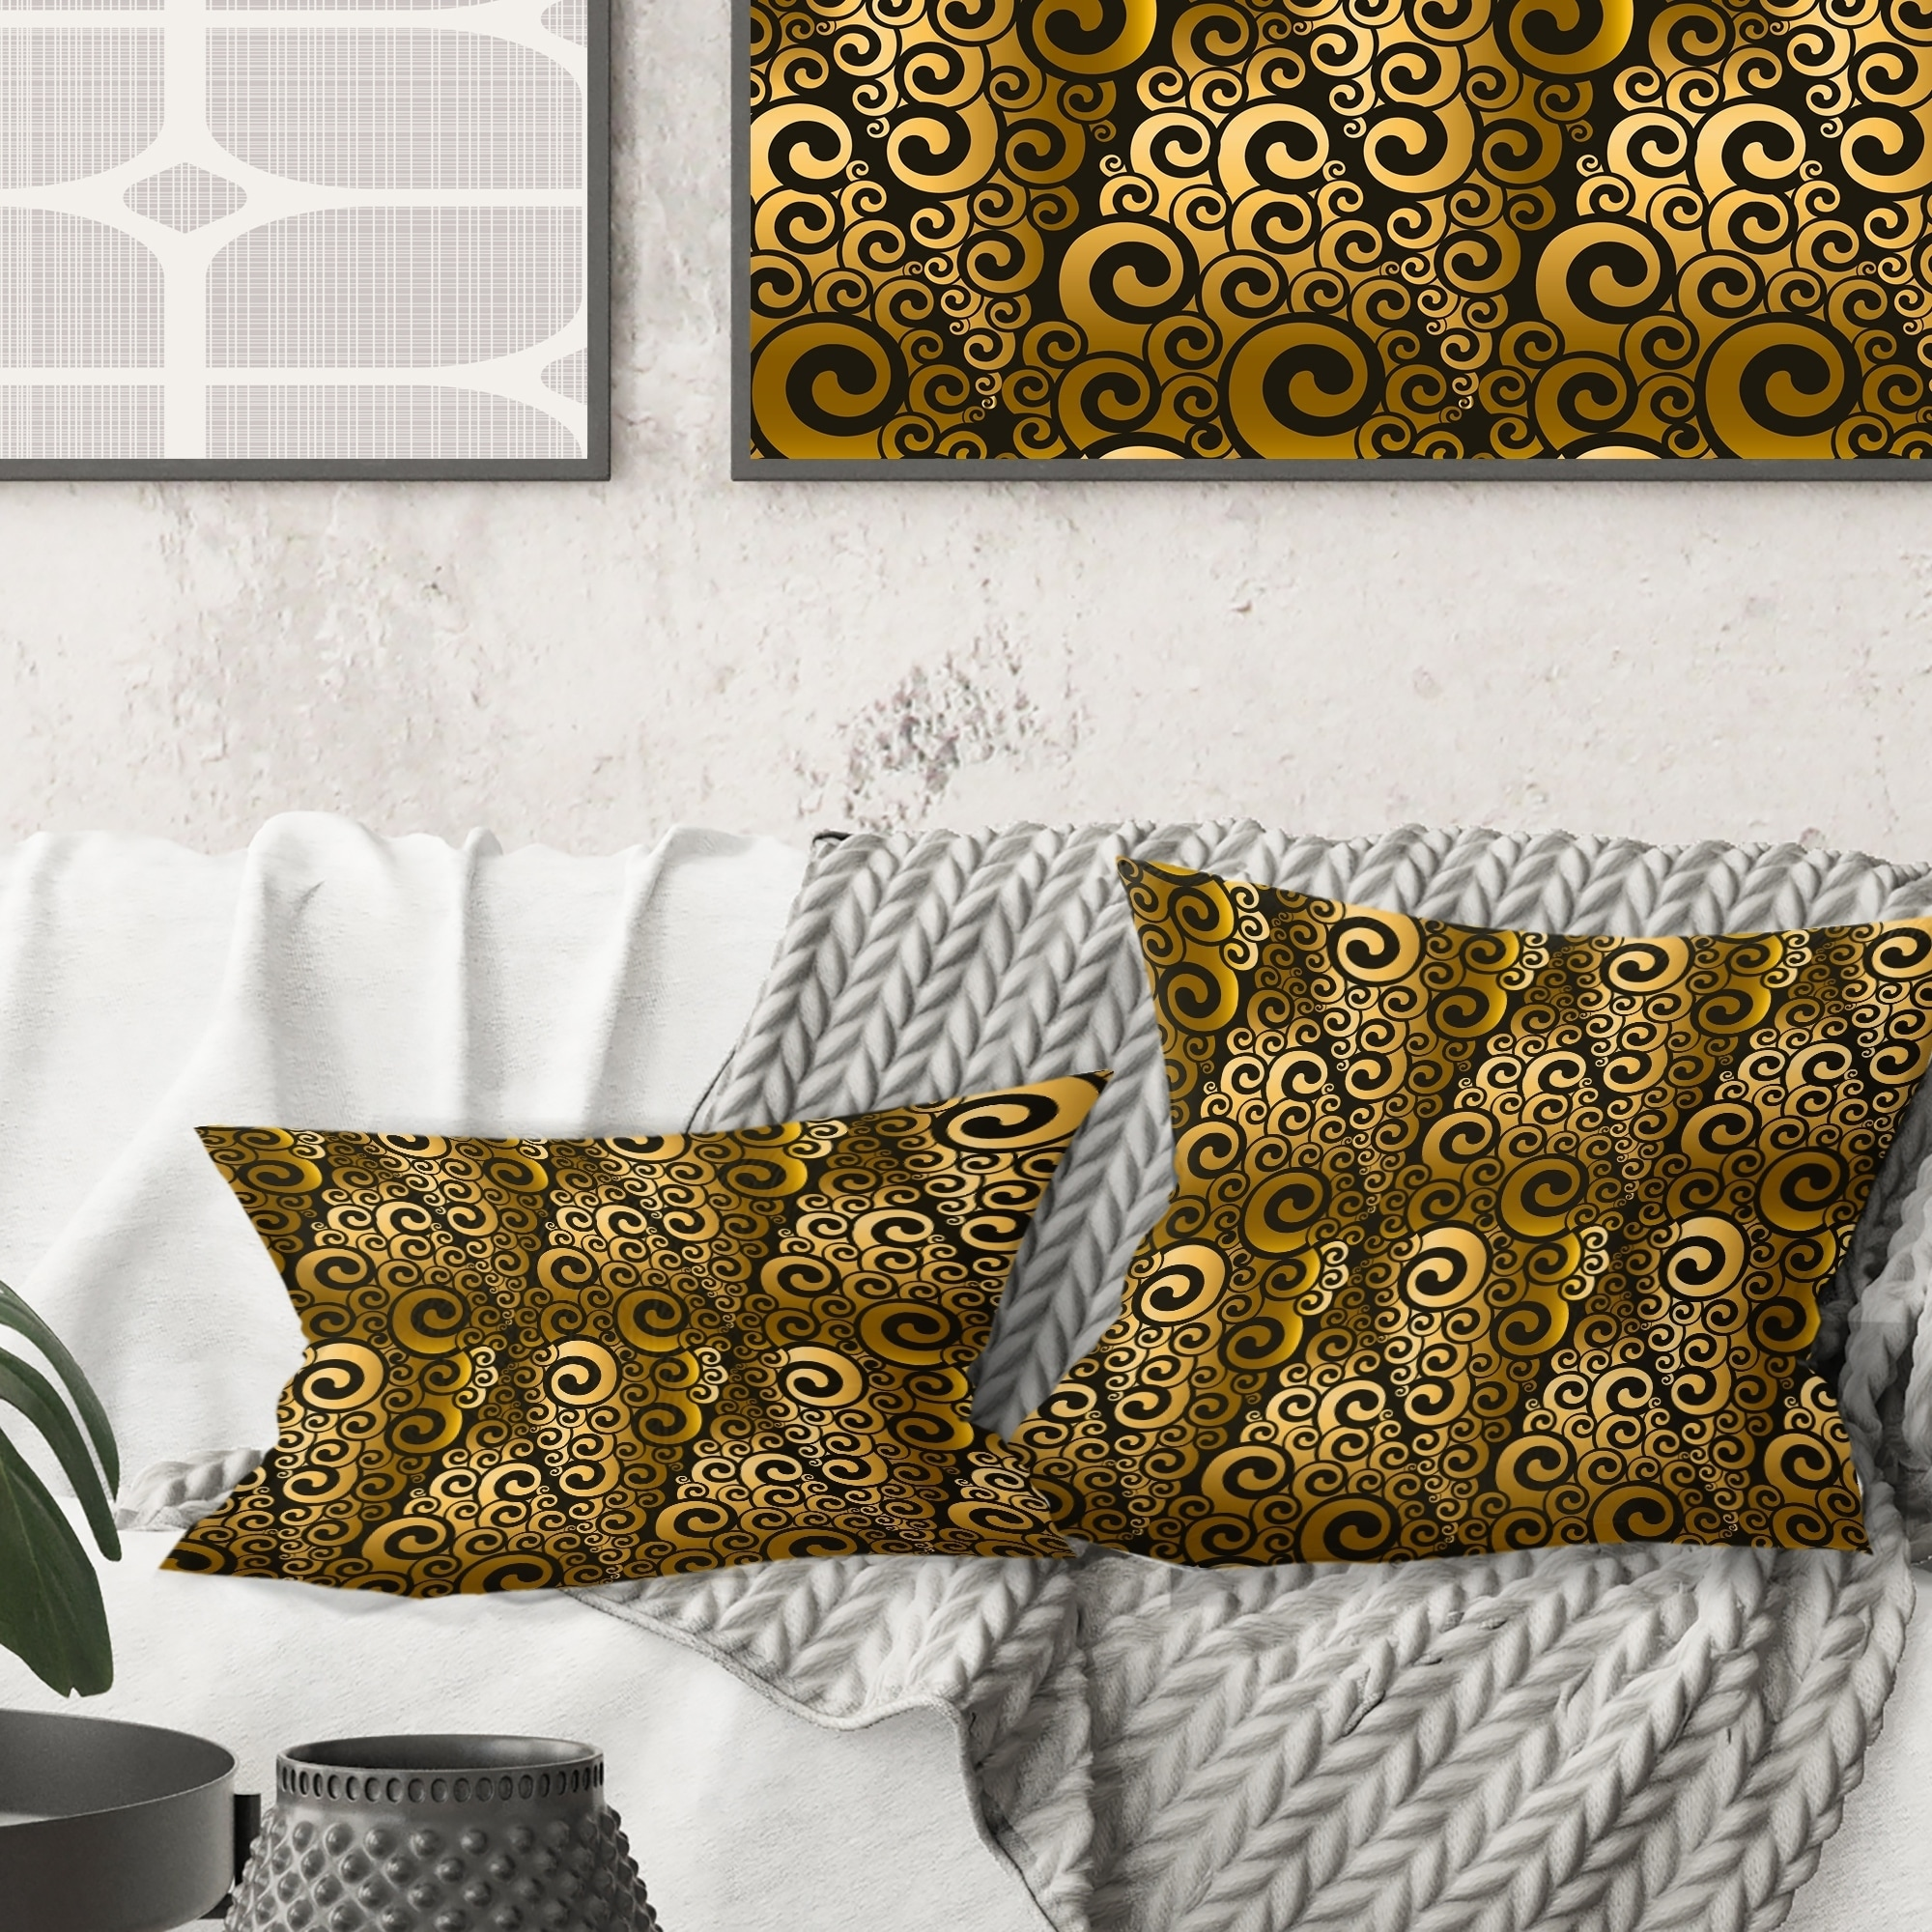 Designart Gold And Black Swirl I Mid Century Modern Throw Pillow Overstock 29063908